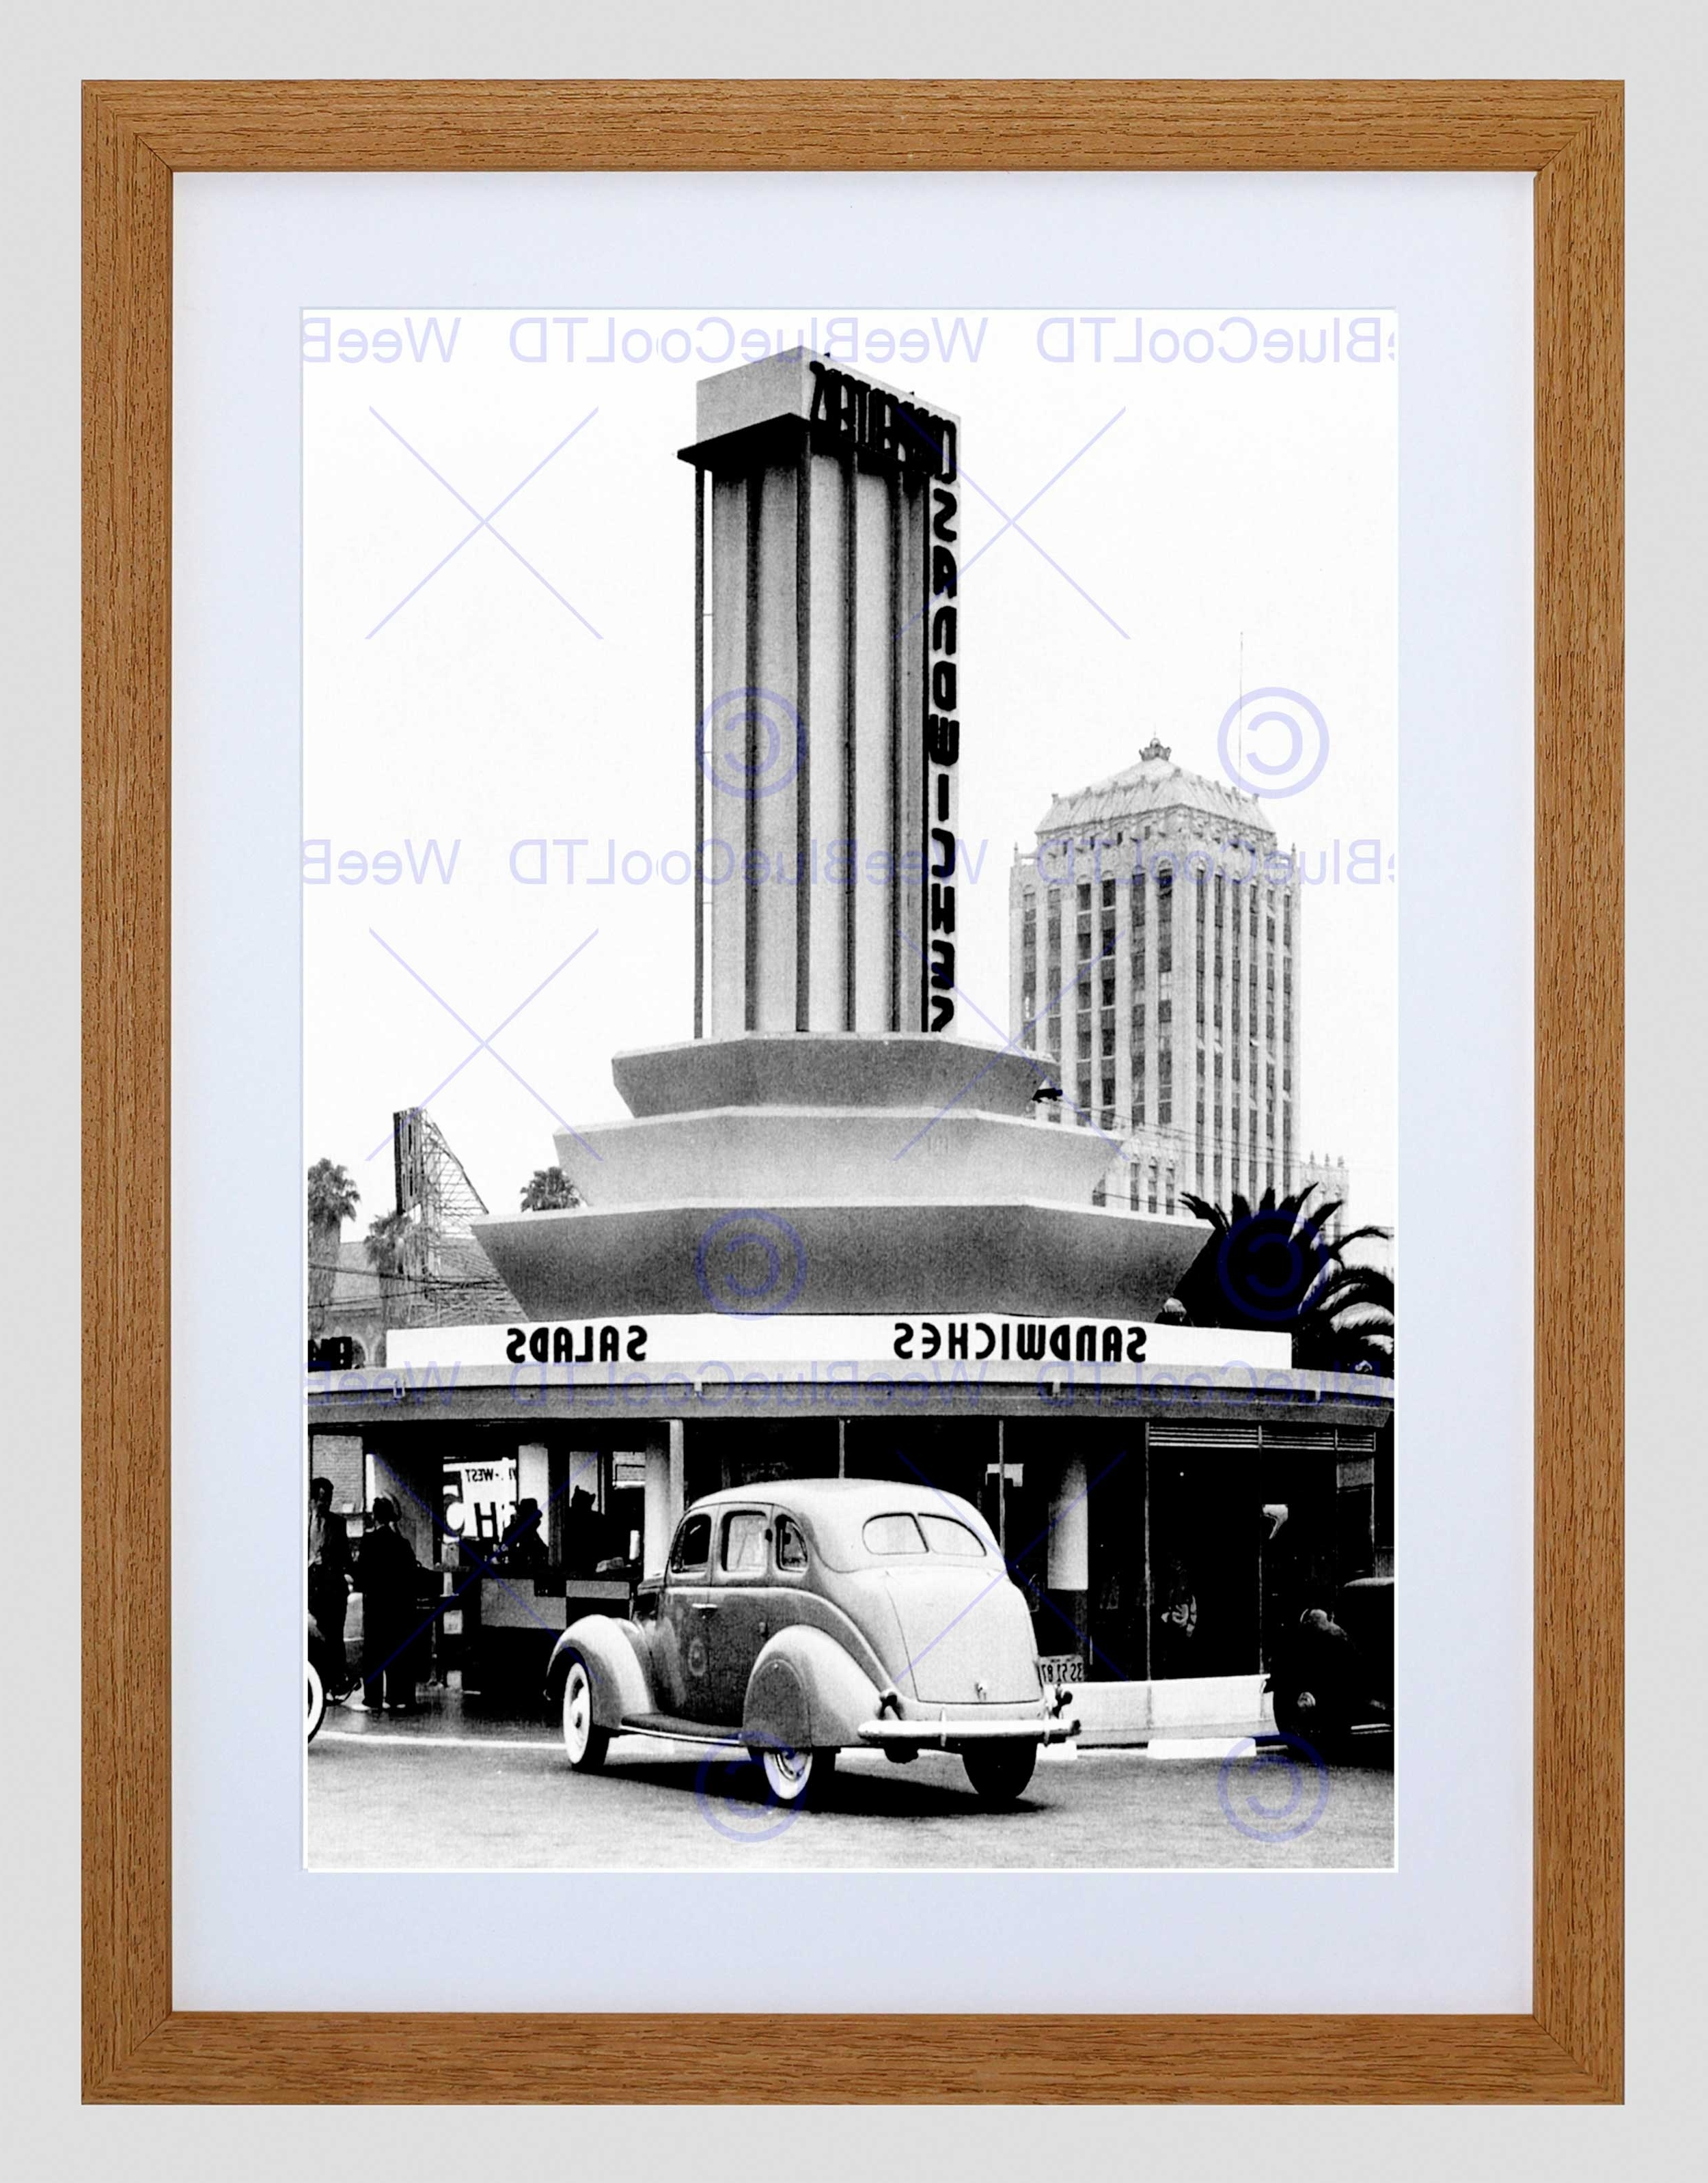 Well Known Los Angeles Framed Art Prints With Regard To Vintage Sandwich Shop Los Angeles California Usa Framed Art Print (View 13 of 15)